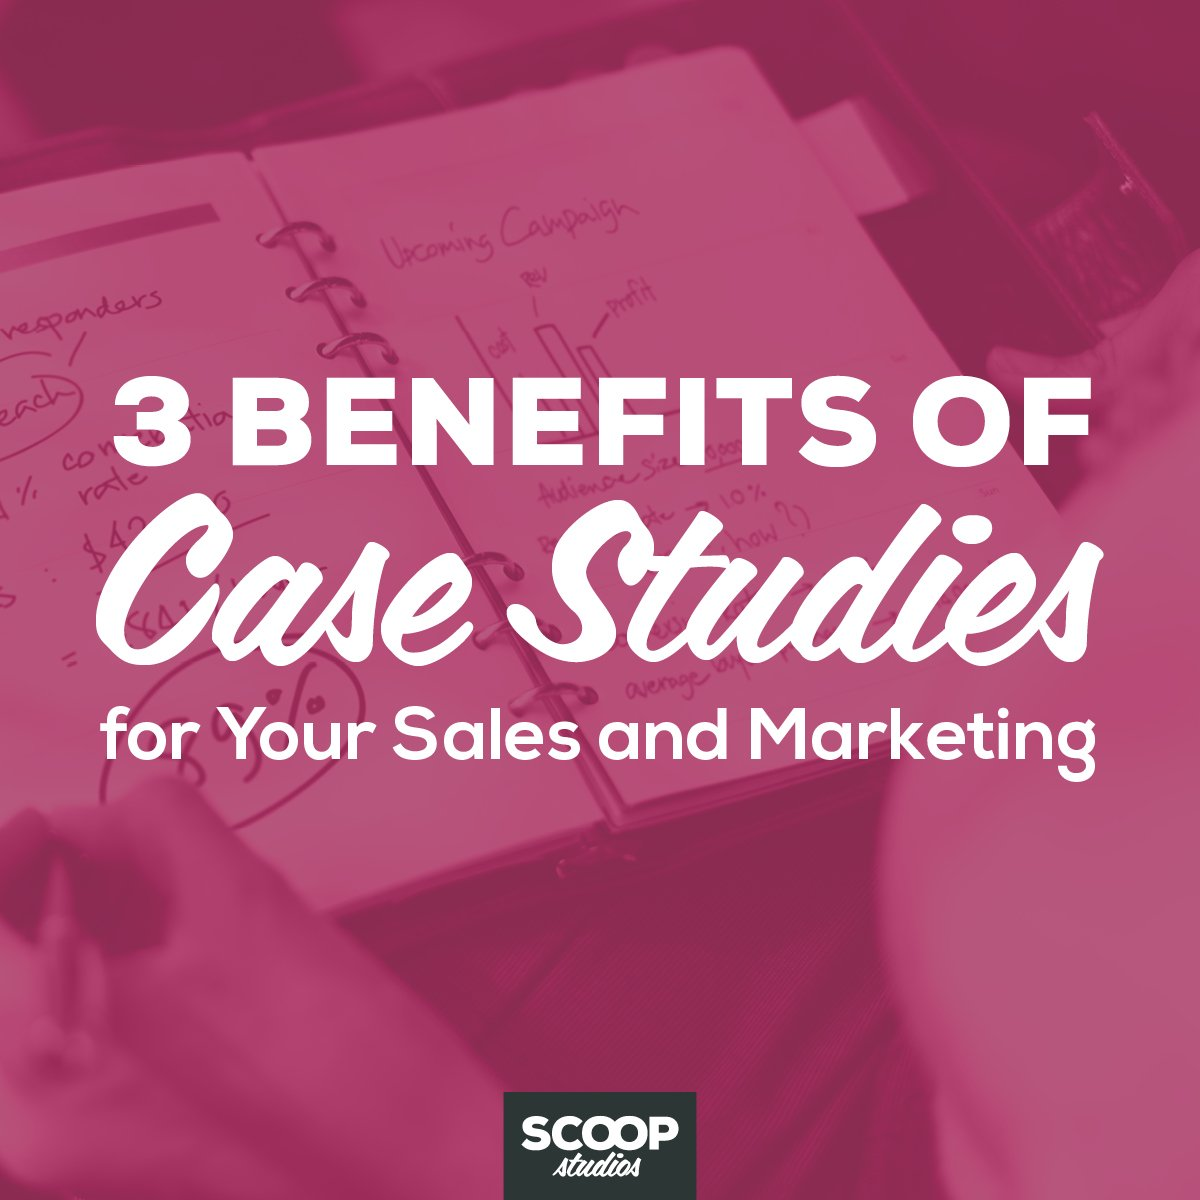 Benefits of case studies